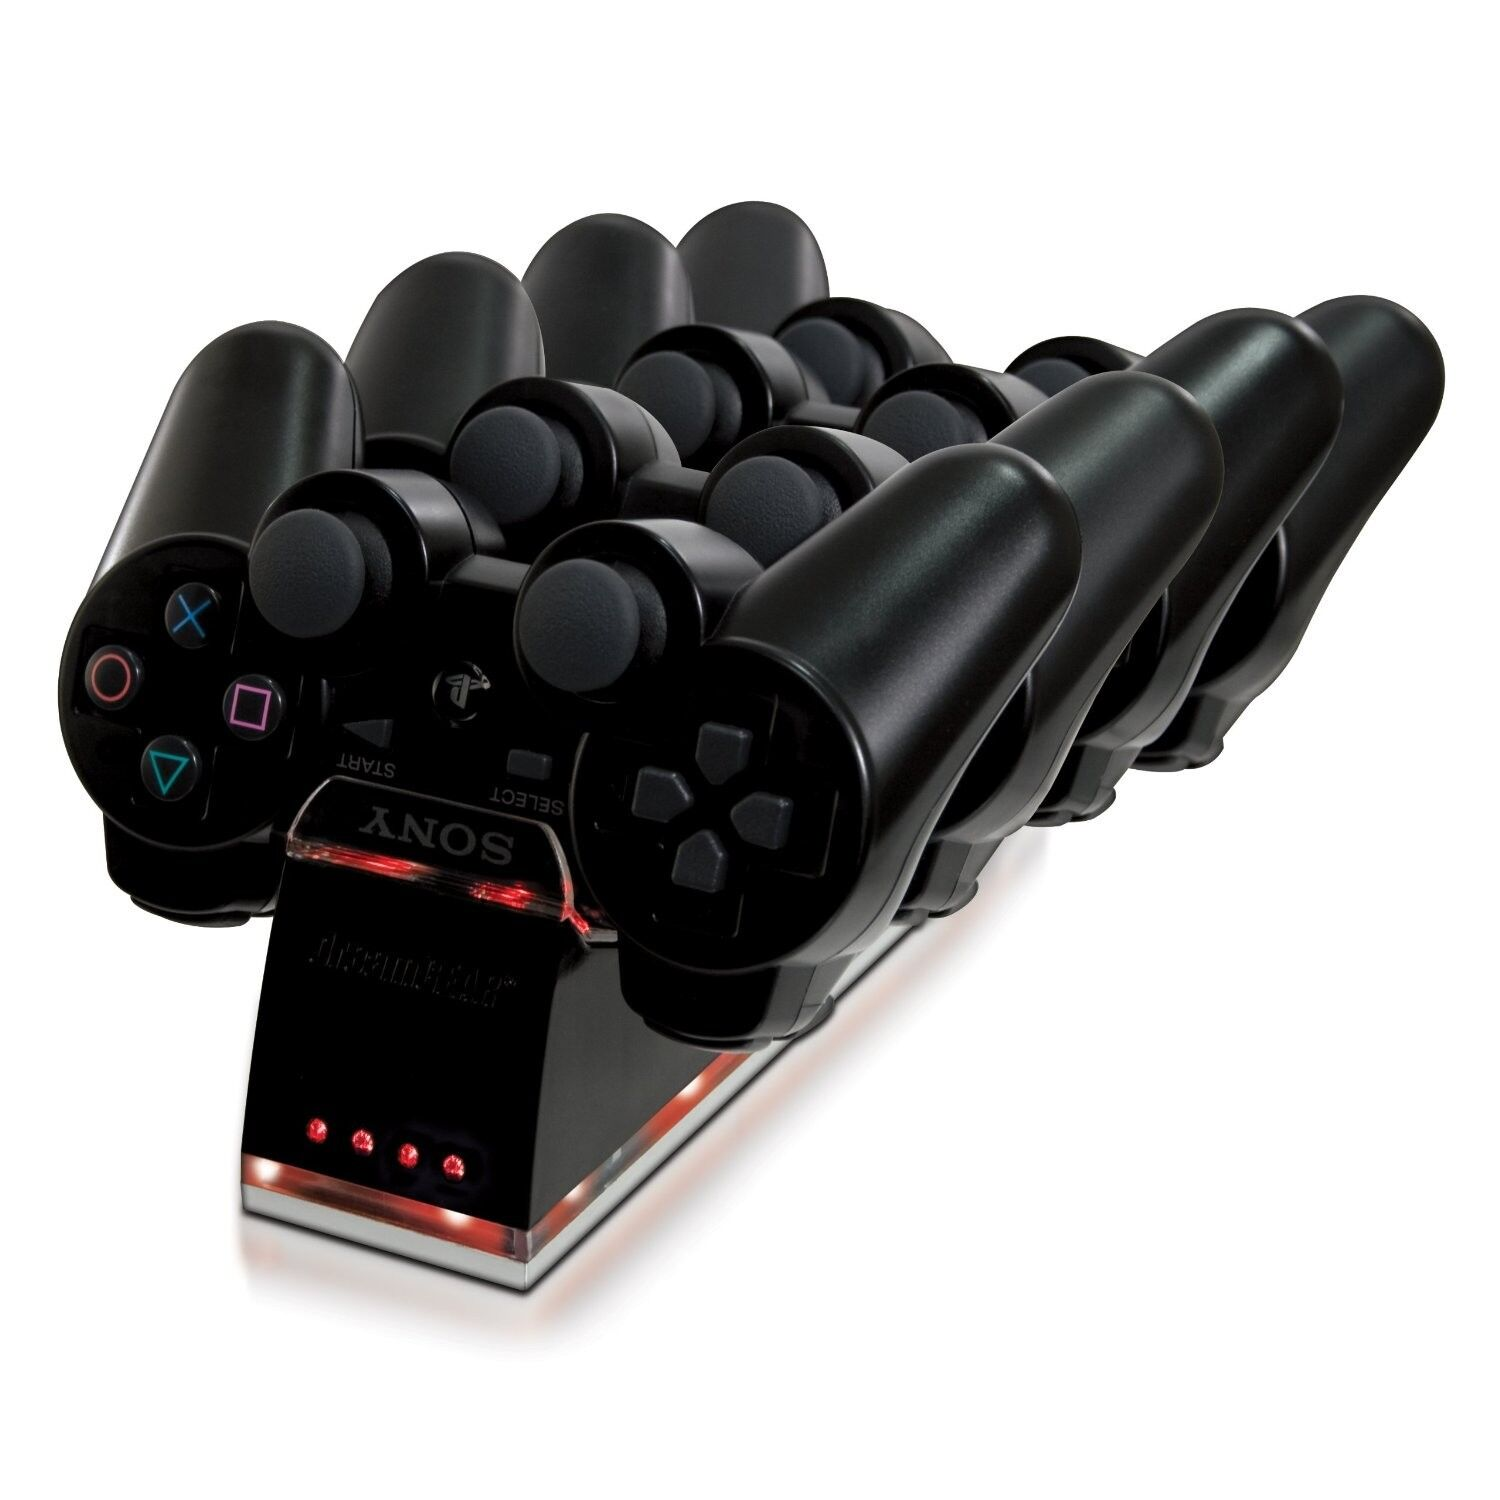 Dreamgear PS3 Quad Dock Dualshock Controllers Charger Station For Playstation 3